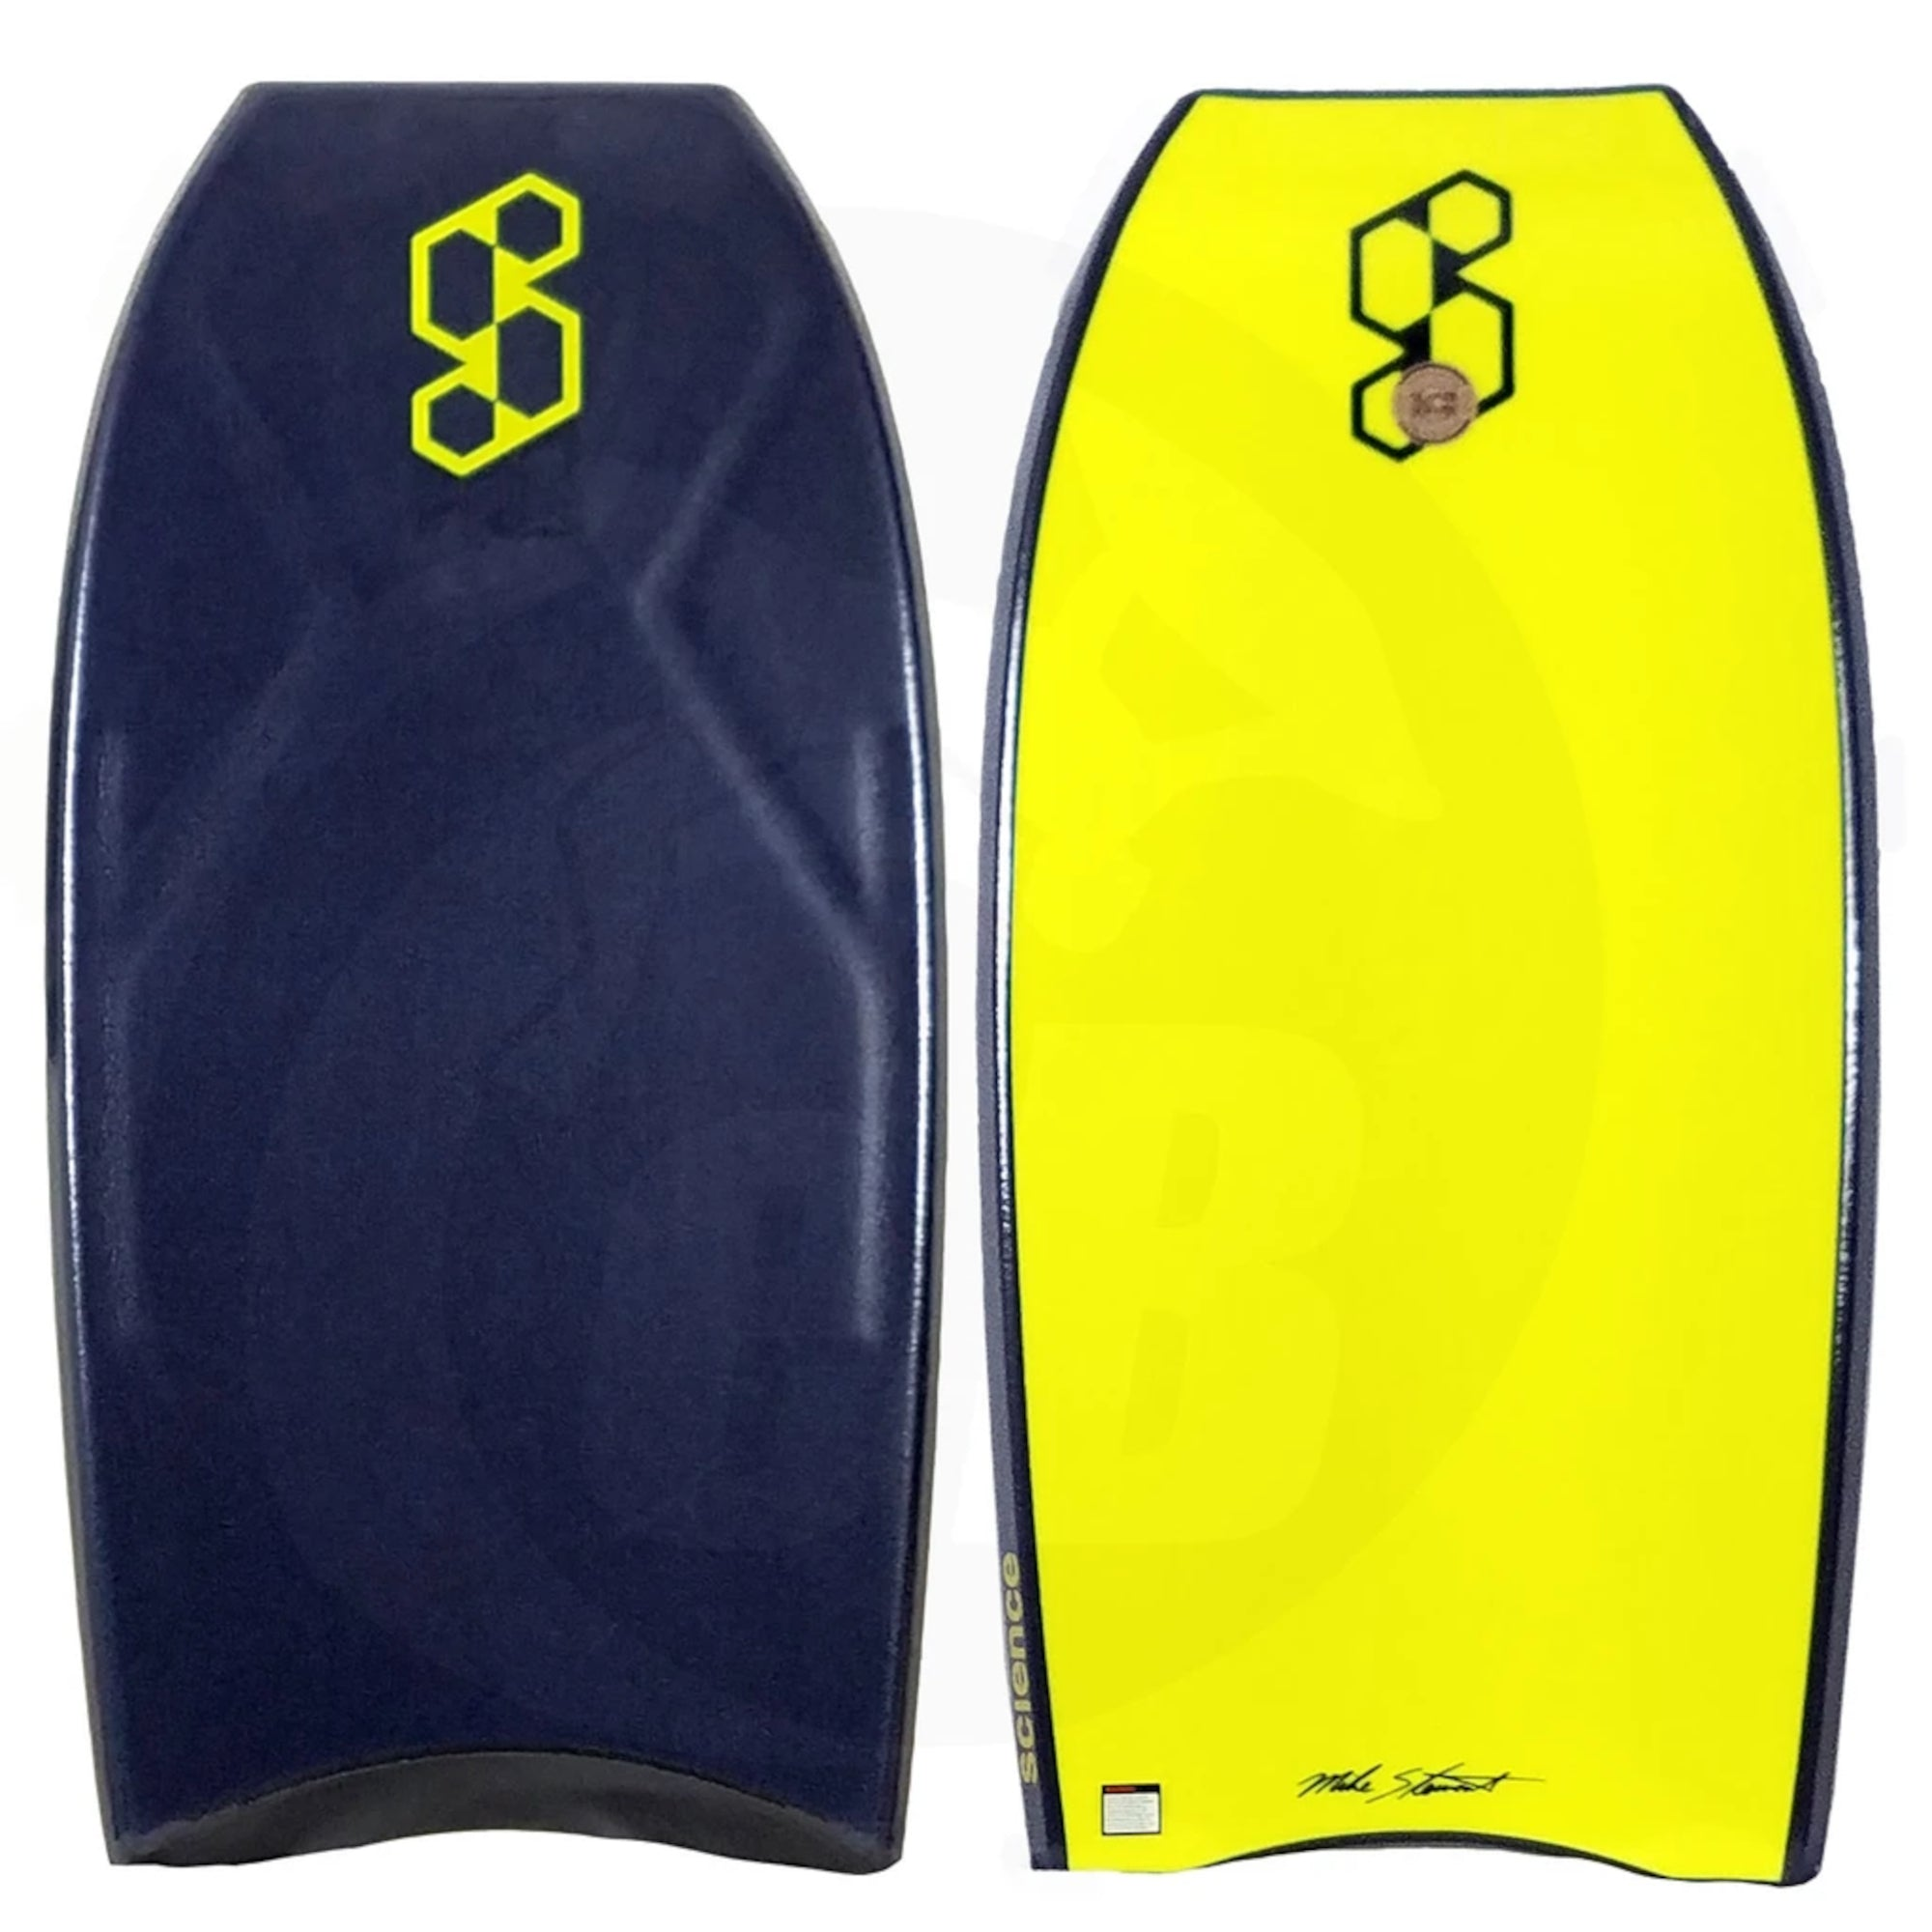 "Mike Stewart Science Pro Team PP 41.75"" Bodyboard - Midnight Blue/Fluoro Yellow"